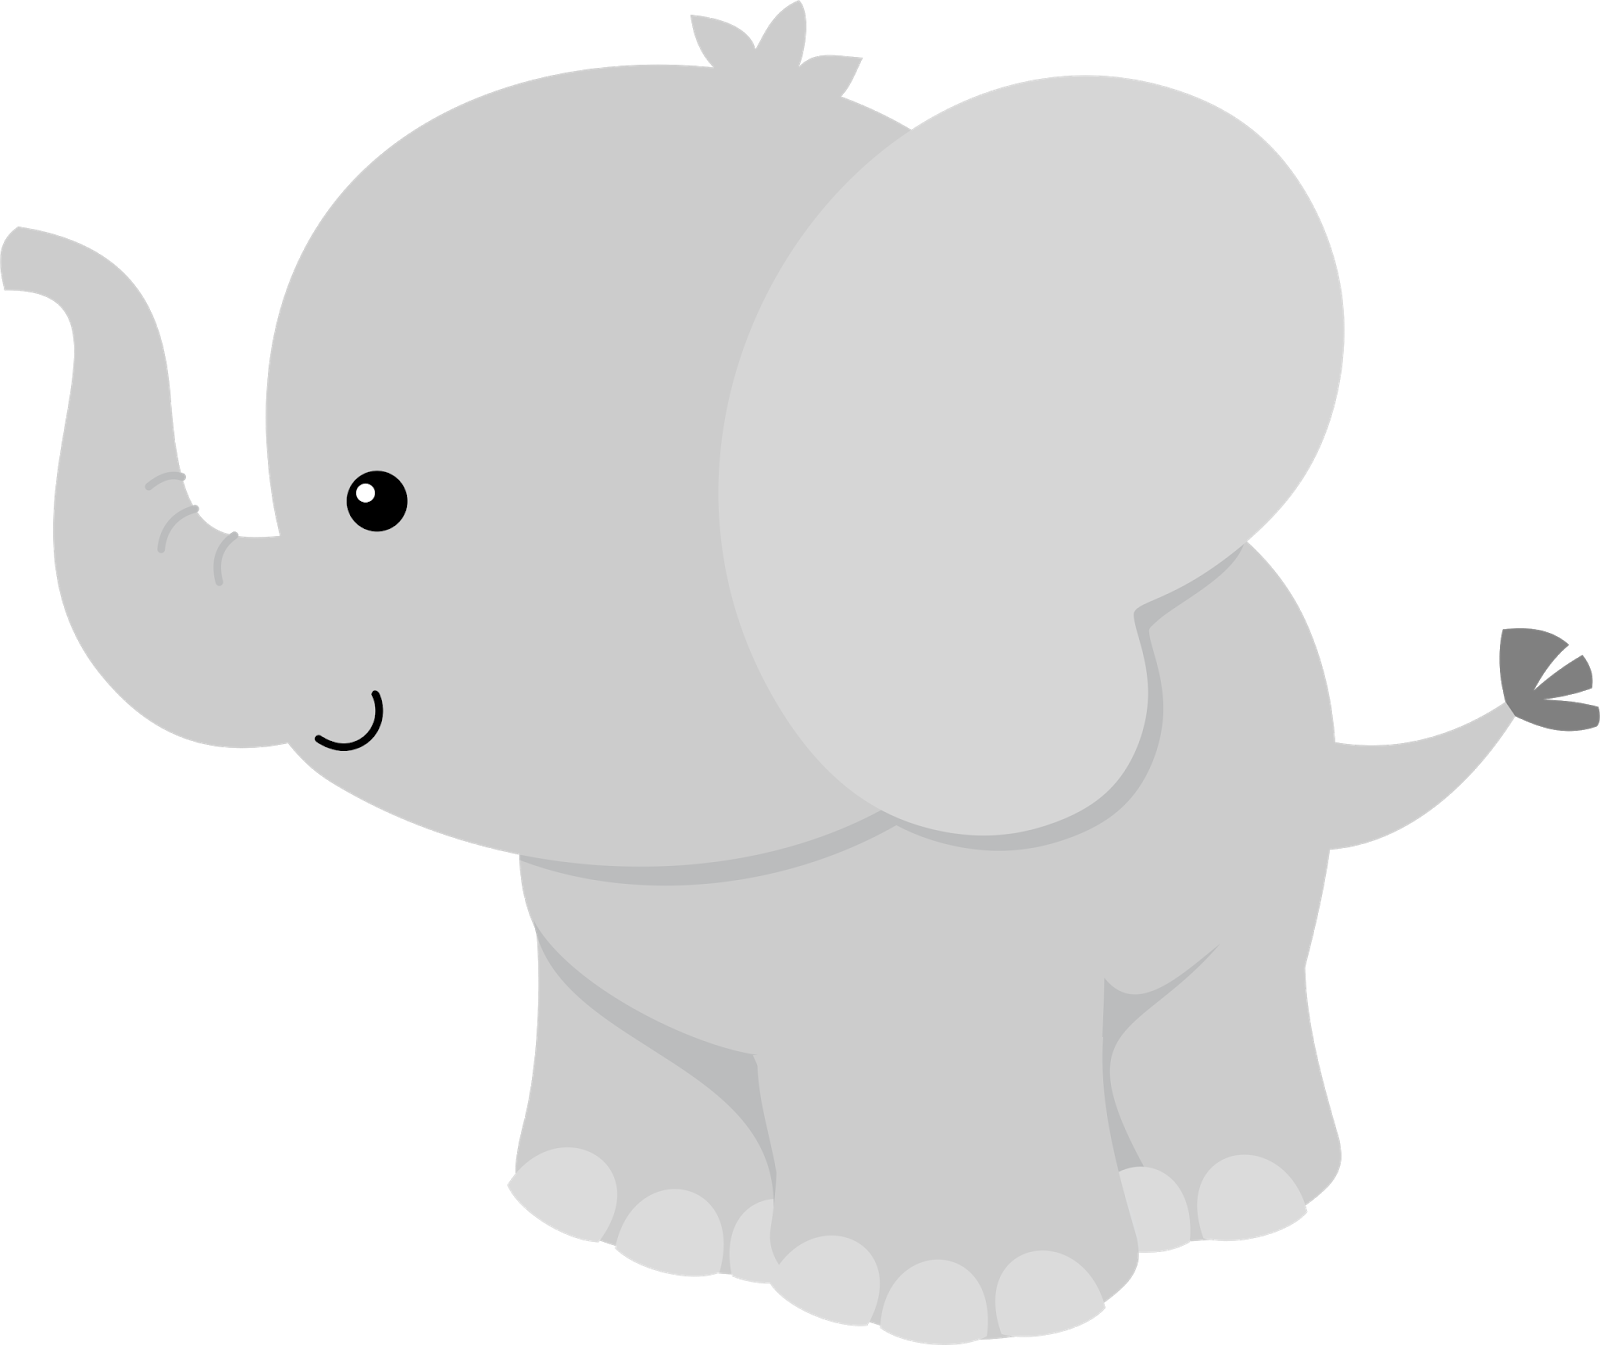 Baby elephant with heart clipart graphic freeuse download jungle-baby-clipart-010.png 1,600×1,345 píxeles | Cumple animalitos ... graphic freeuse download